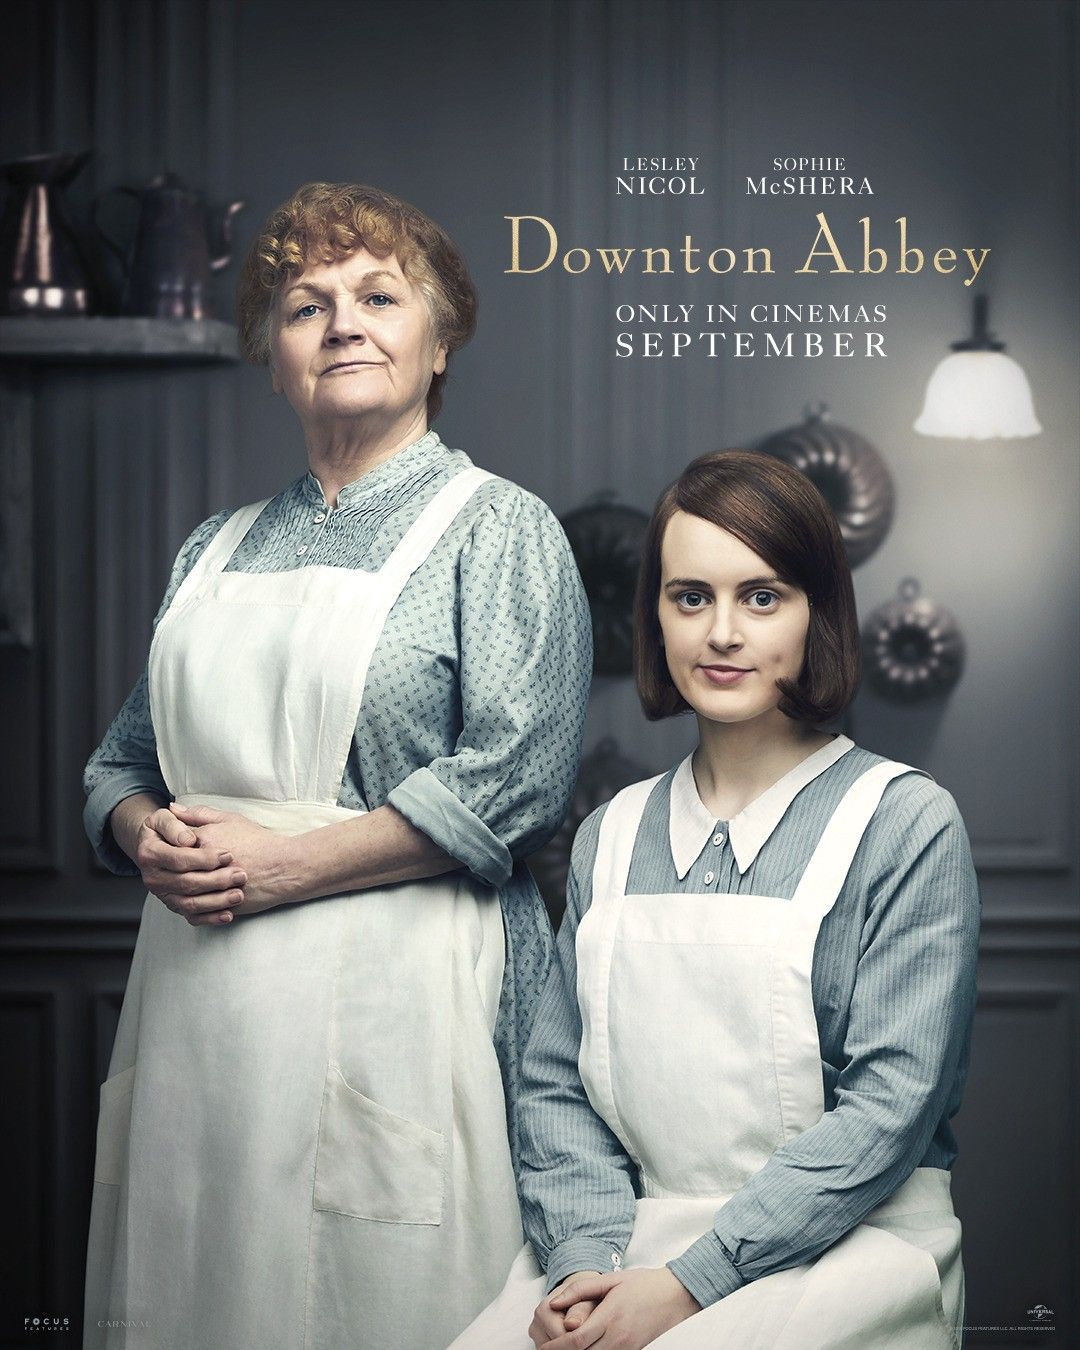 Downton Abbey The Movie Character Posters Beryl Patmore and Daisy Maison